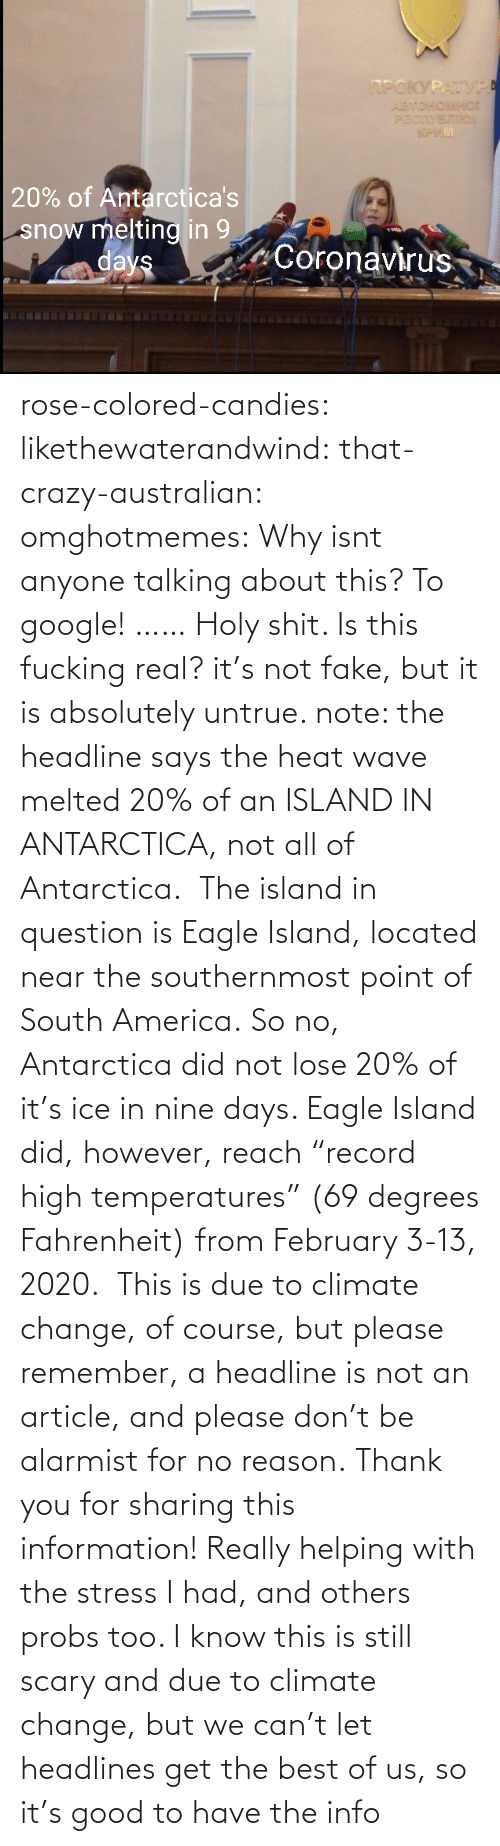 "article: rose-colored-candies: likethewaterandwind:   that-crazy-australian:  omghotmemes:  Why isnt anyone talking about this?   To google!  ……   Holy shit. Is this fucking real?   it's not fake, but it is absolutely untrue. note: the headline says the heat wave melted 20% of an ISLAND IN ANTARCTICA, not all of Antarctica.  The island in question is Eagle Island, located near the southernmost point of South America. So no, Antarctica did not lose 20% of it's ice in nine days. Eagle Island did, however, reach ""record high temperatures"" (69 degrees Fahrenheit) from February 3-13, 2020.  This is due to climate change, of course, but please remember, a headline is not an article, and please don't be alarmist for no reason.    Thank you for sharing this information! Really helping with the stress I had, and others probs too. I know this is still scary and due to climate change, but we can't let headlines get the best of us, so it's good to have the info"